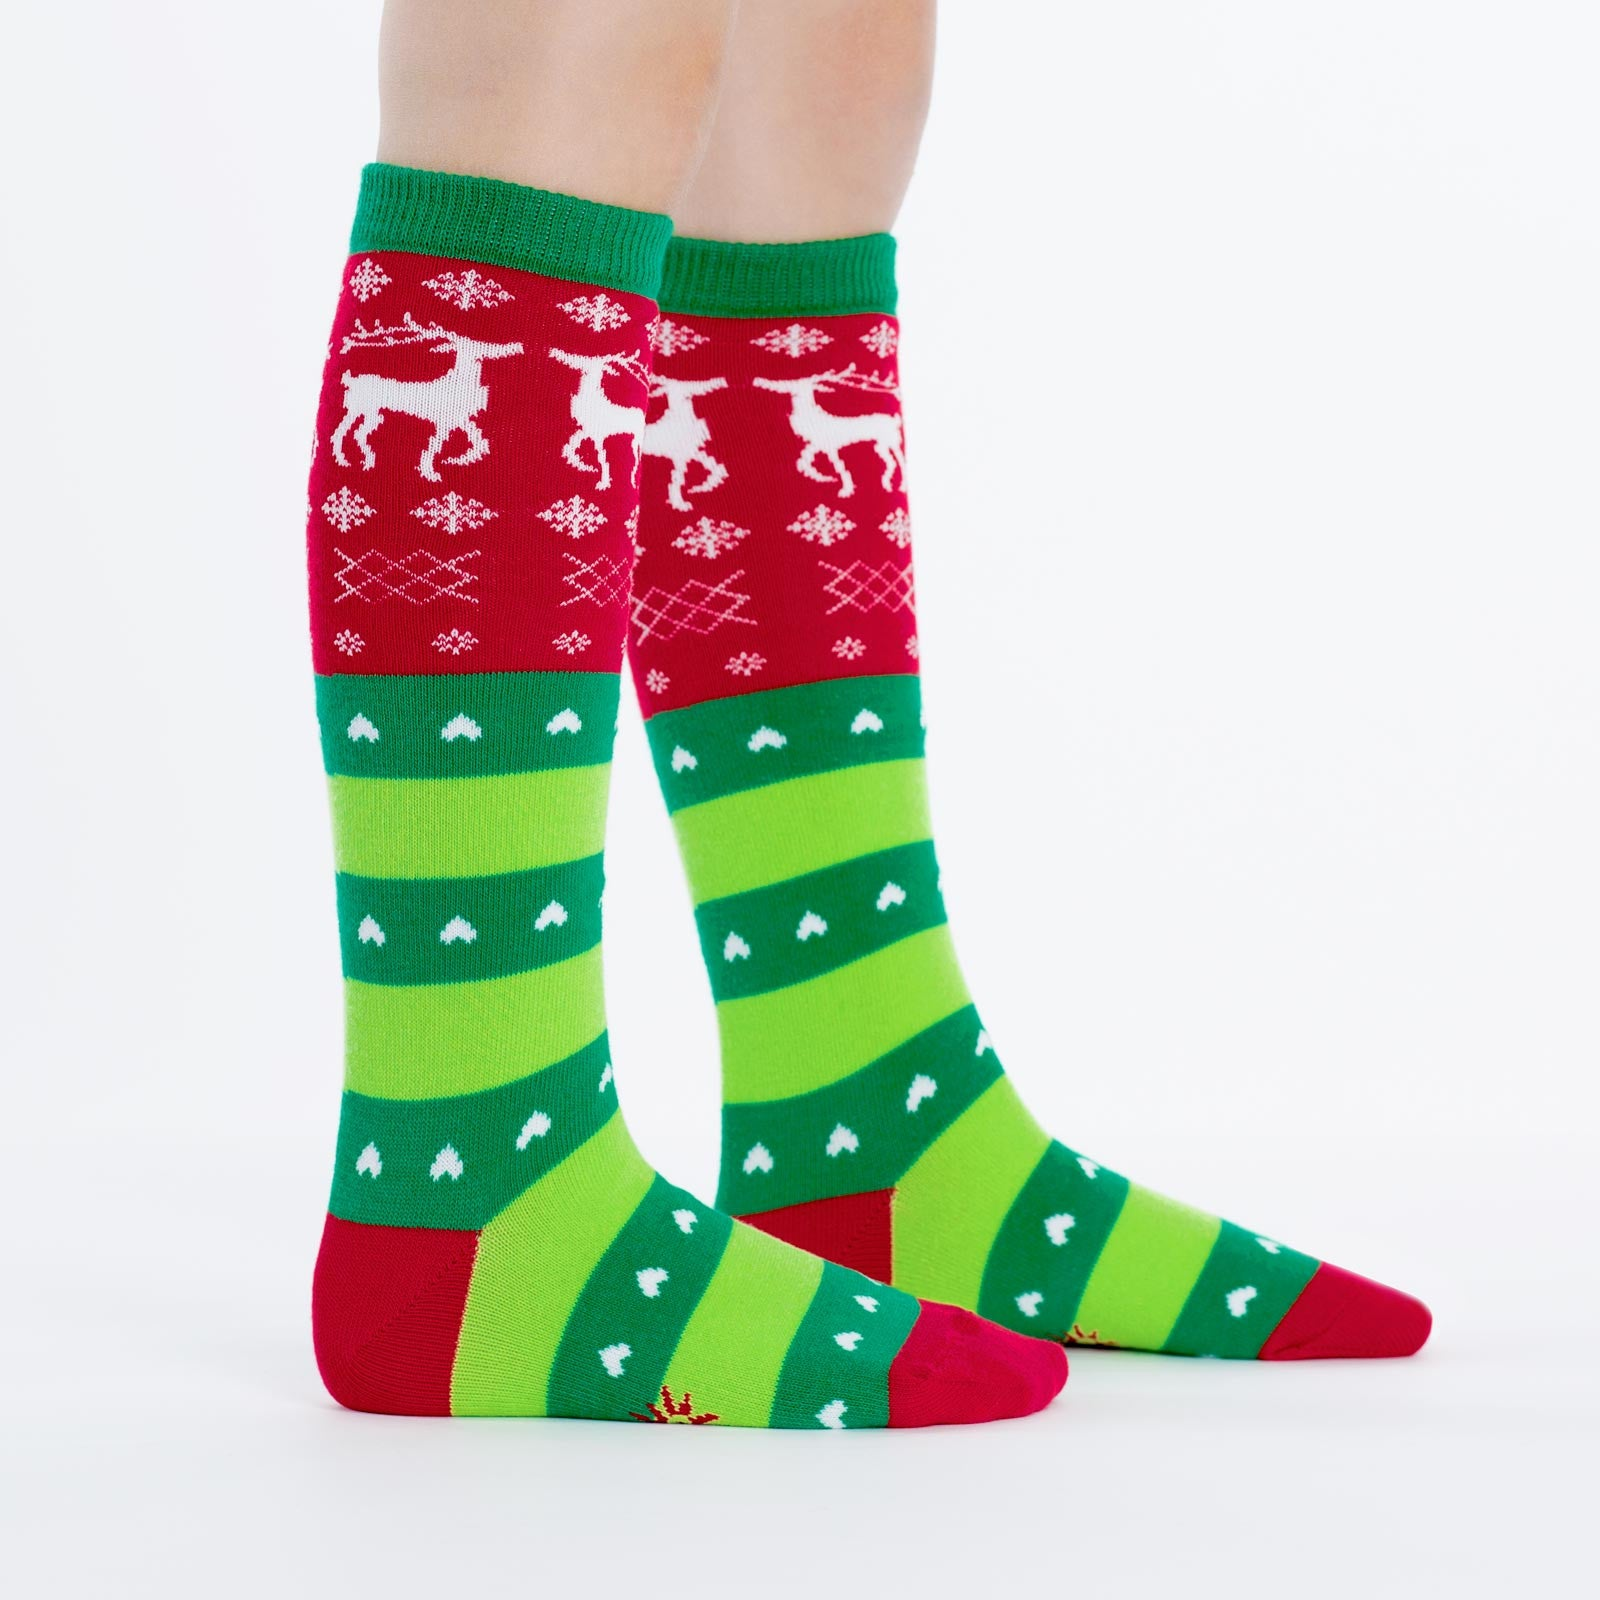 b4ed26f625c Fun Socks - Kids  Christmas Sweater Knee High Socks